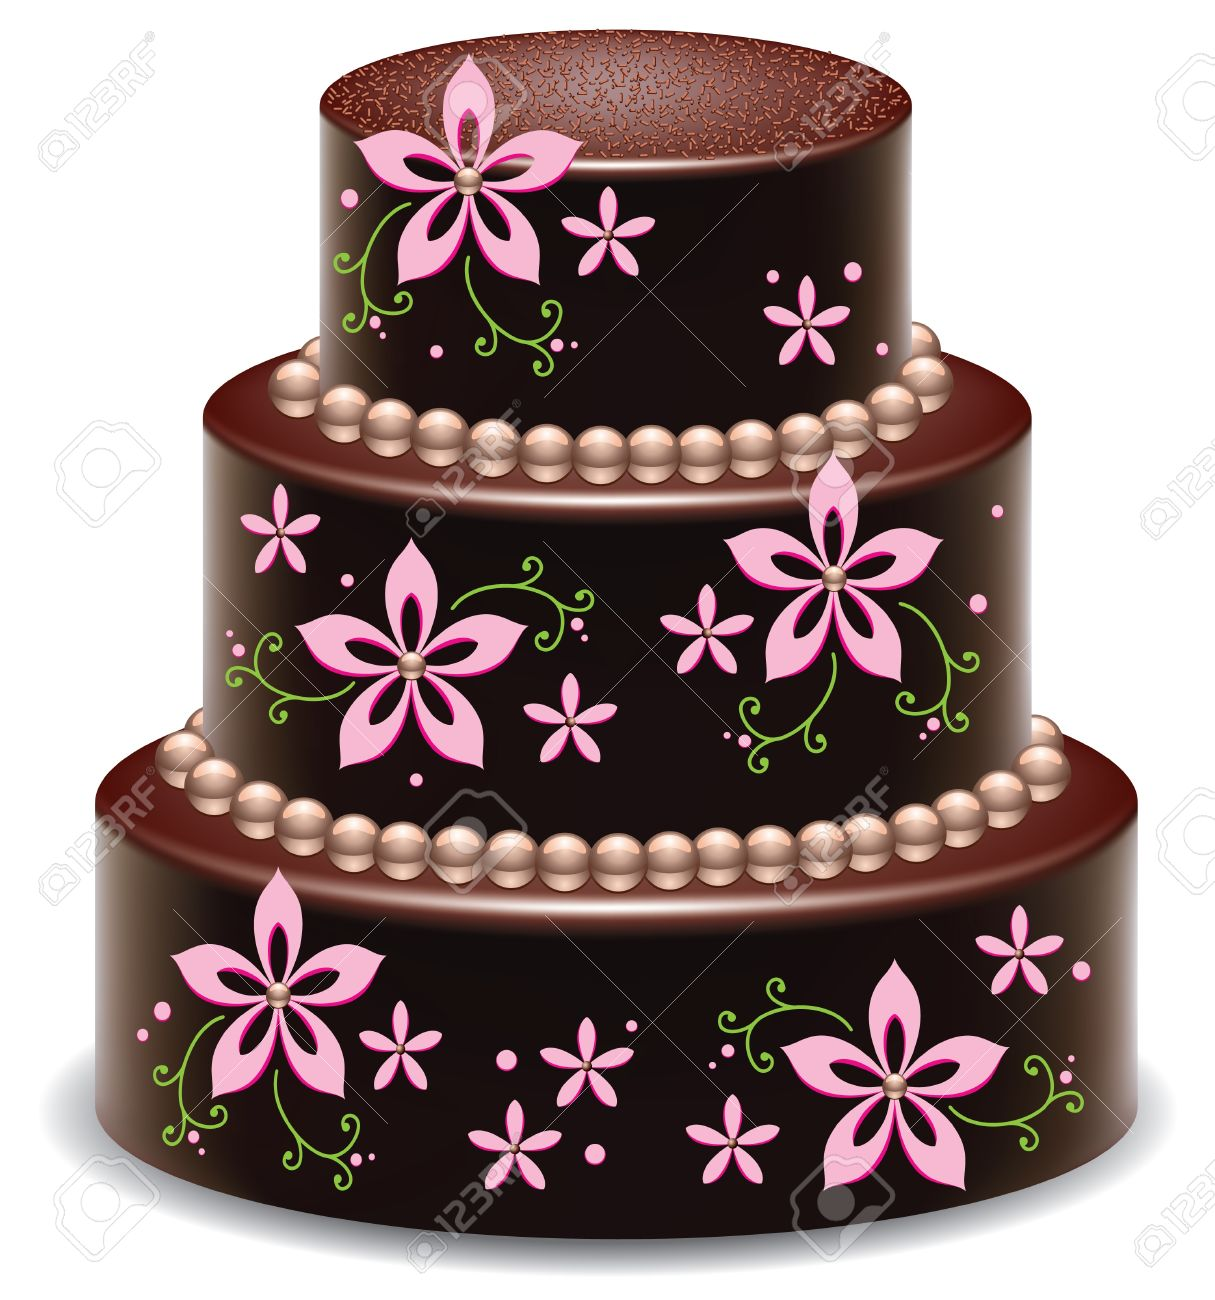 Vector Design Of A Big Delicious Chocolate Cake Royalty Free ...